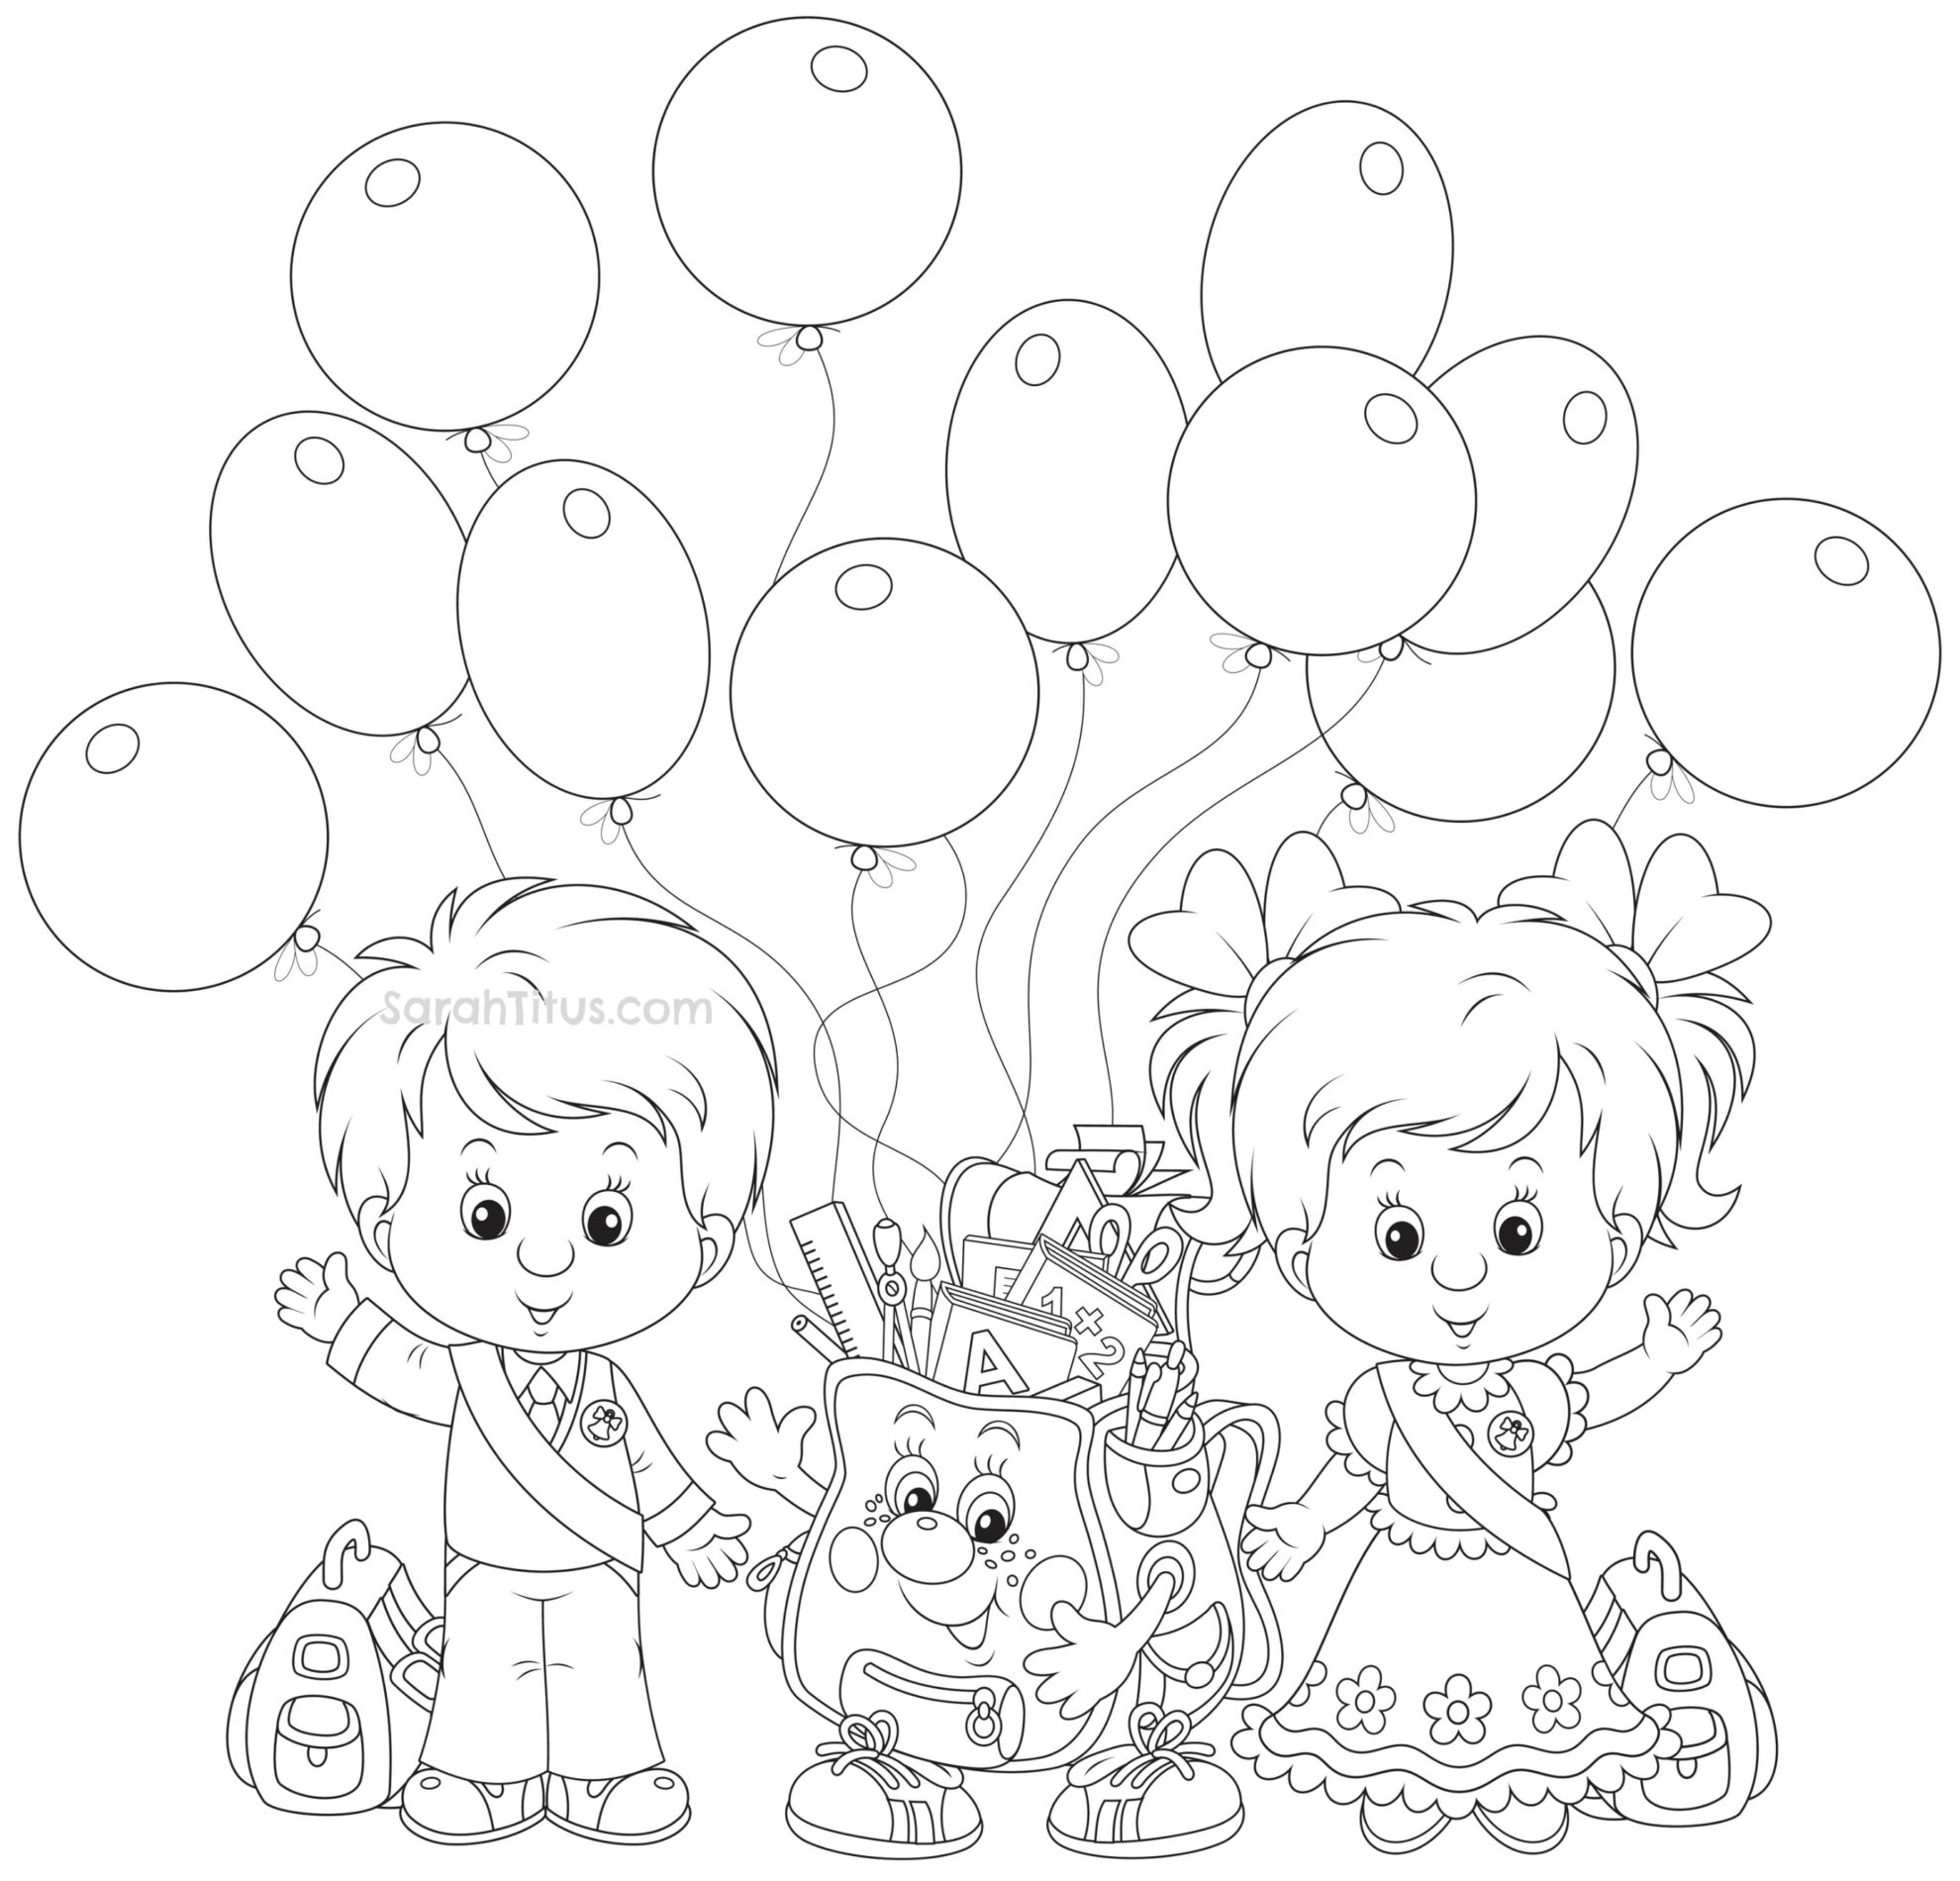 28 First Day Of School Coloring Pages For Preschoolers Photo Ideas ... | 1900x1980